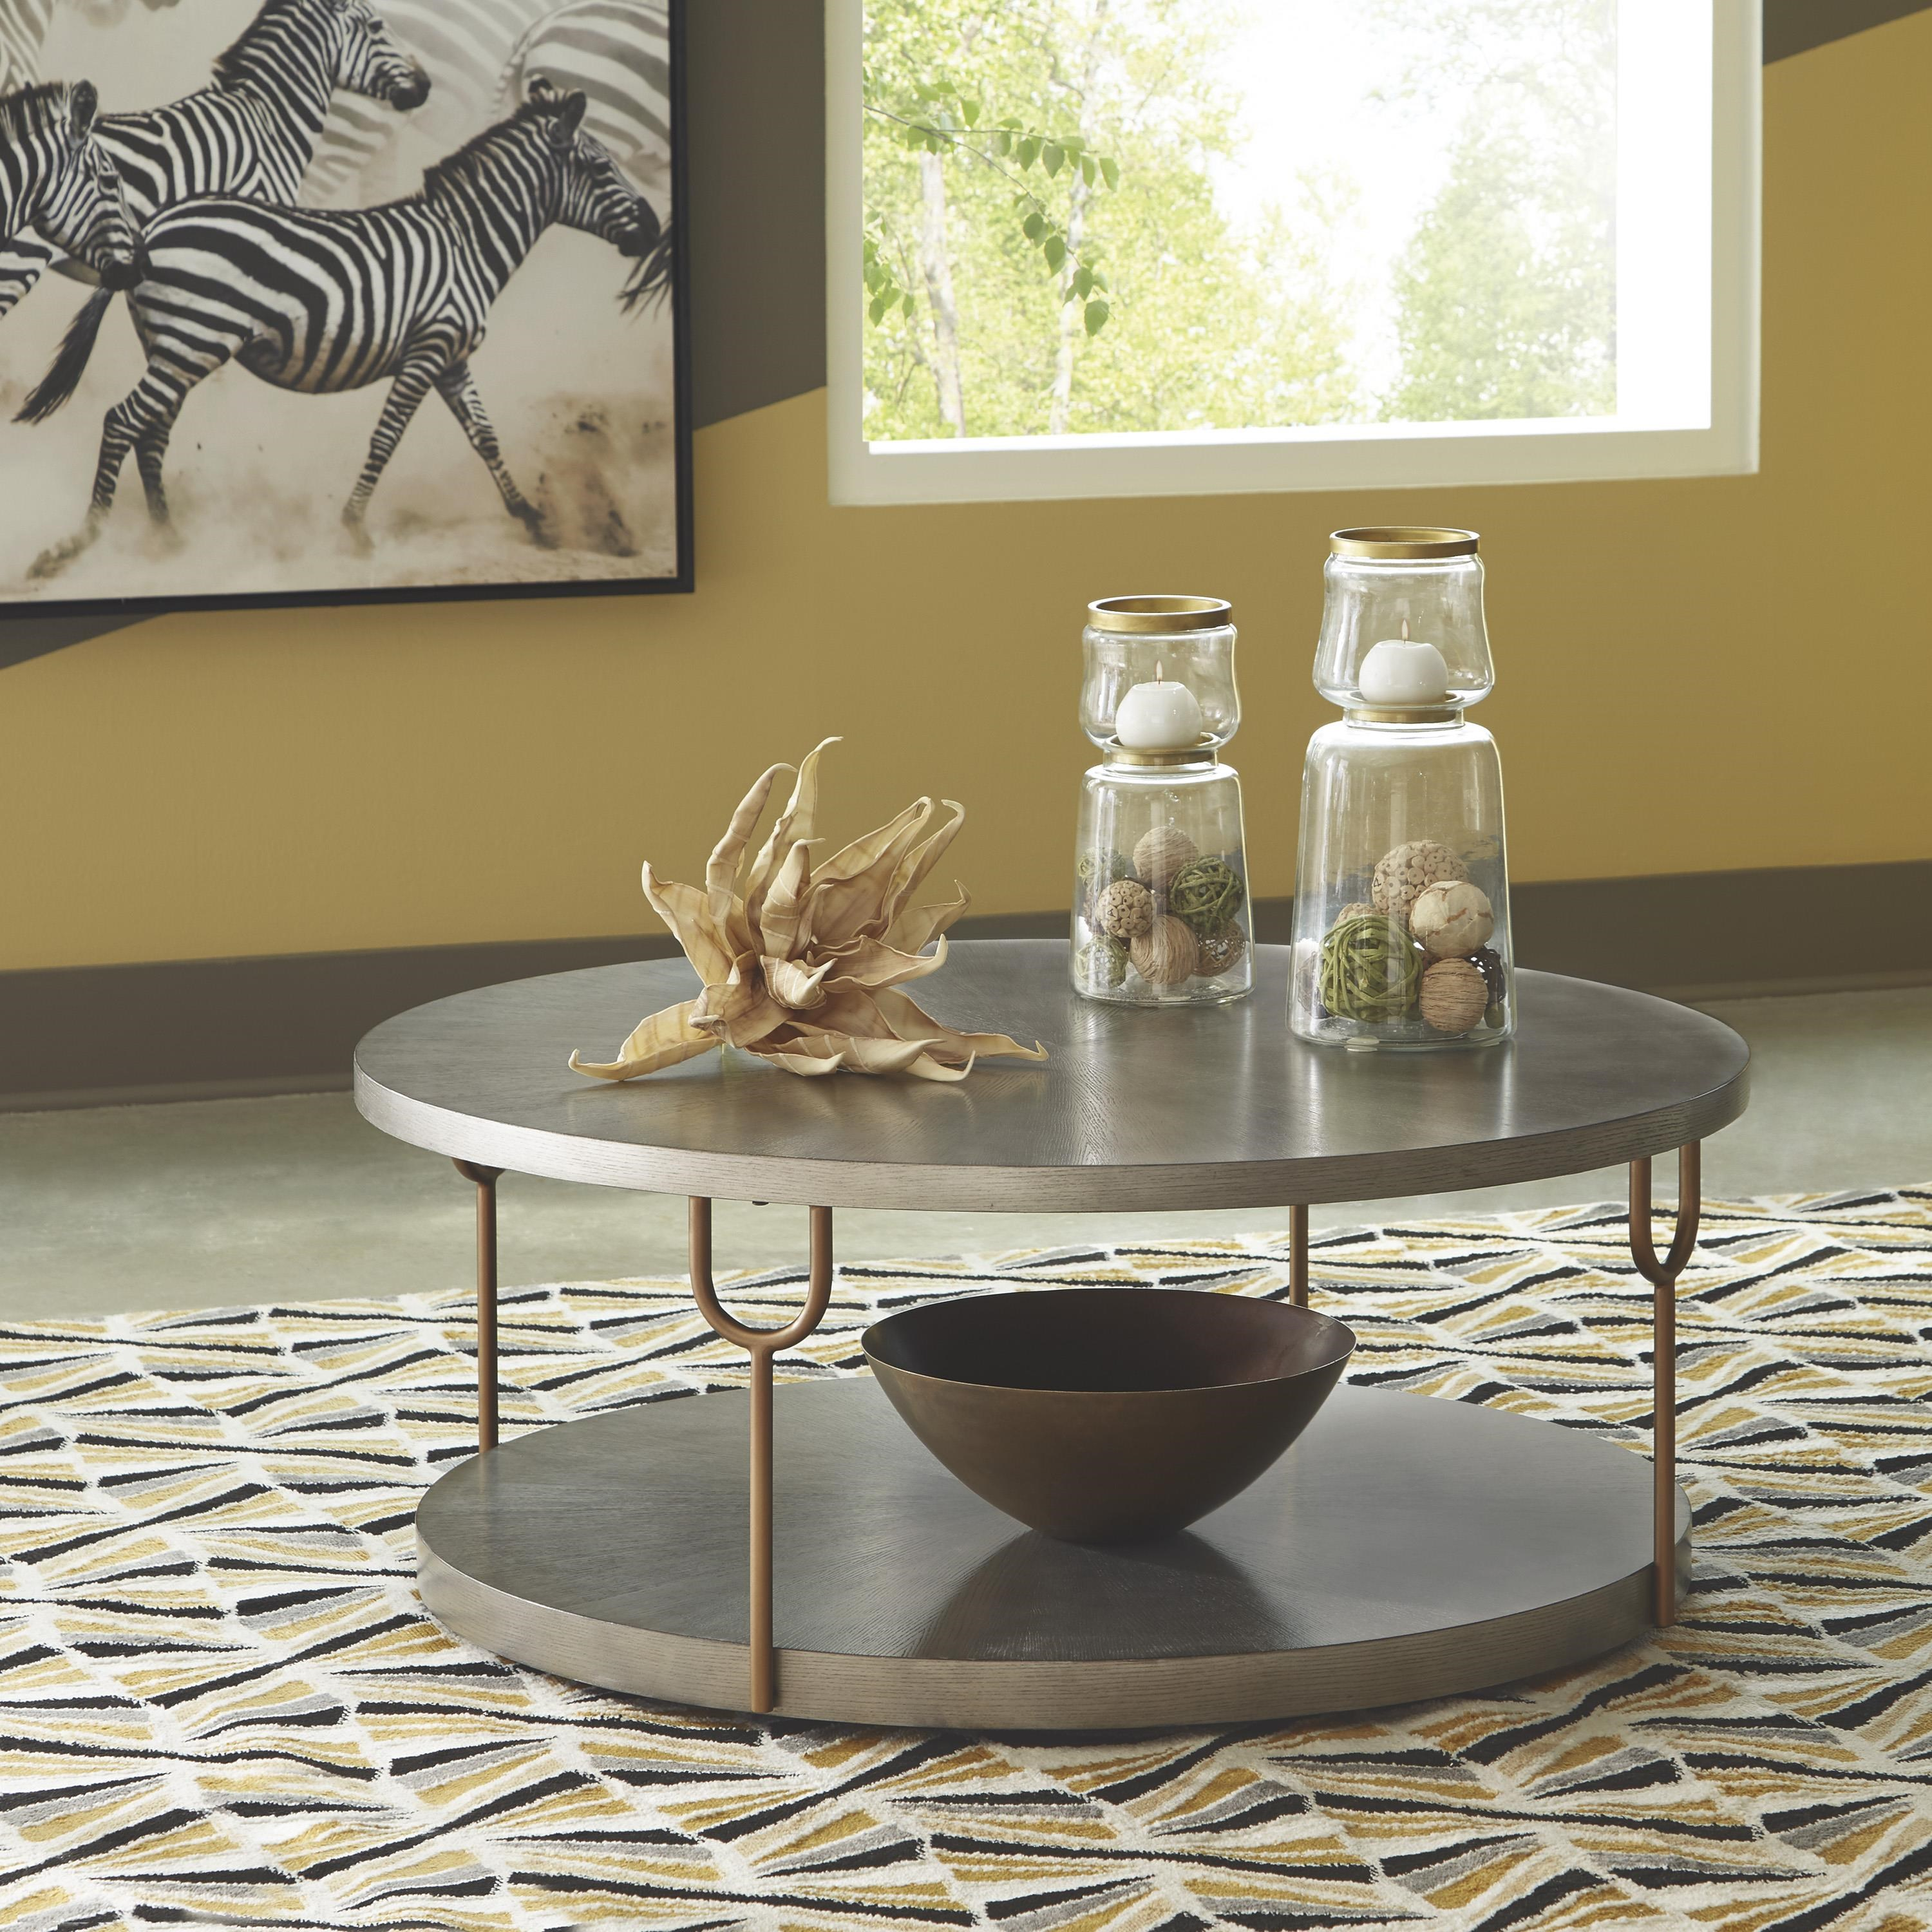 Ranoka 3 Piece Coffee Table Set by Signature Design by Ashley at Sam Levitz Outlet